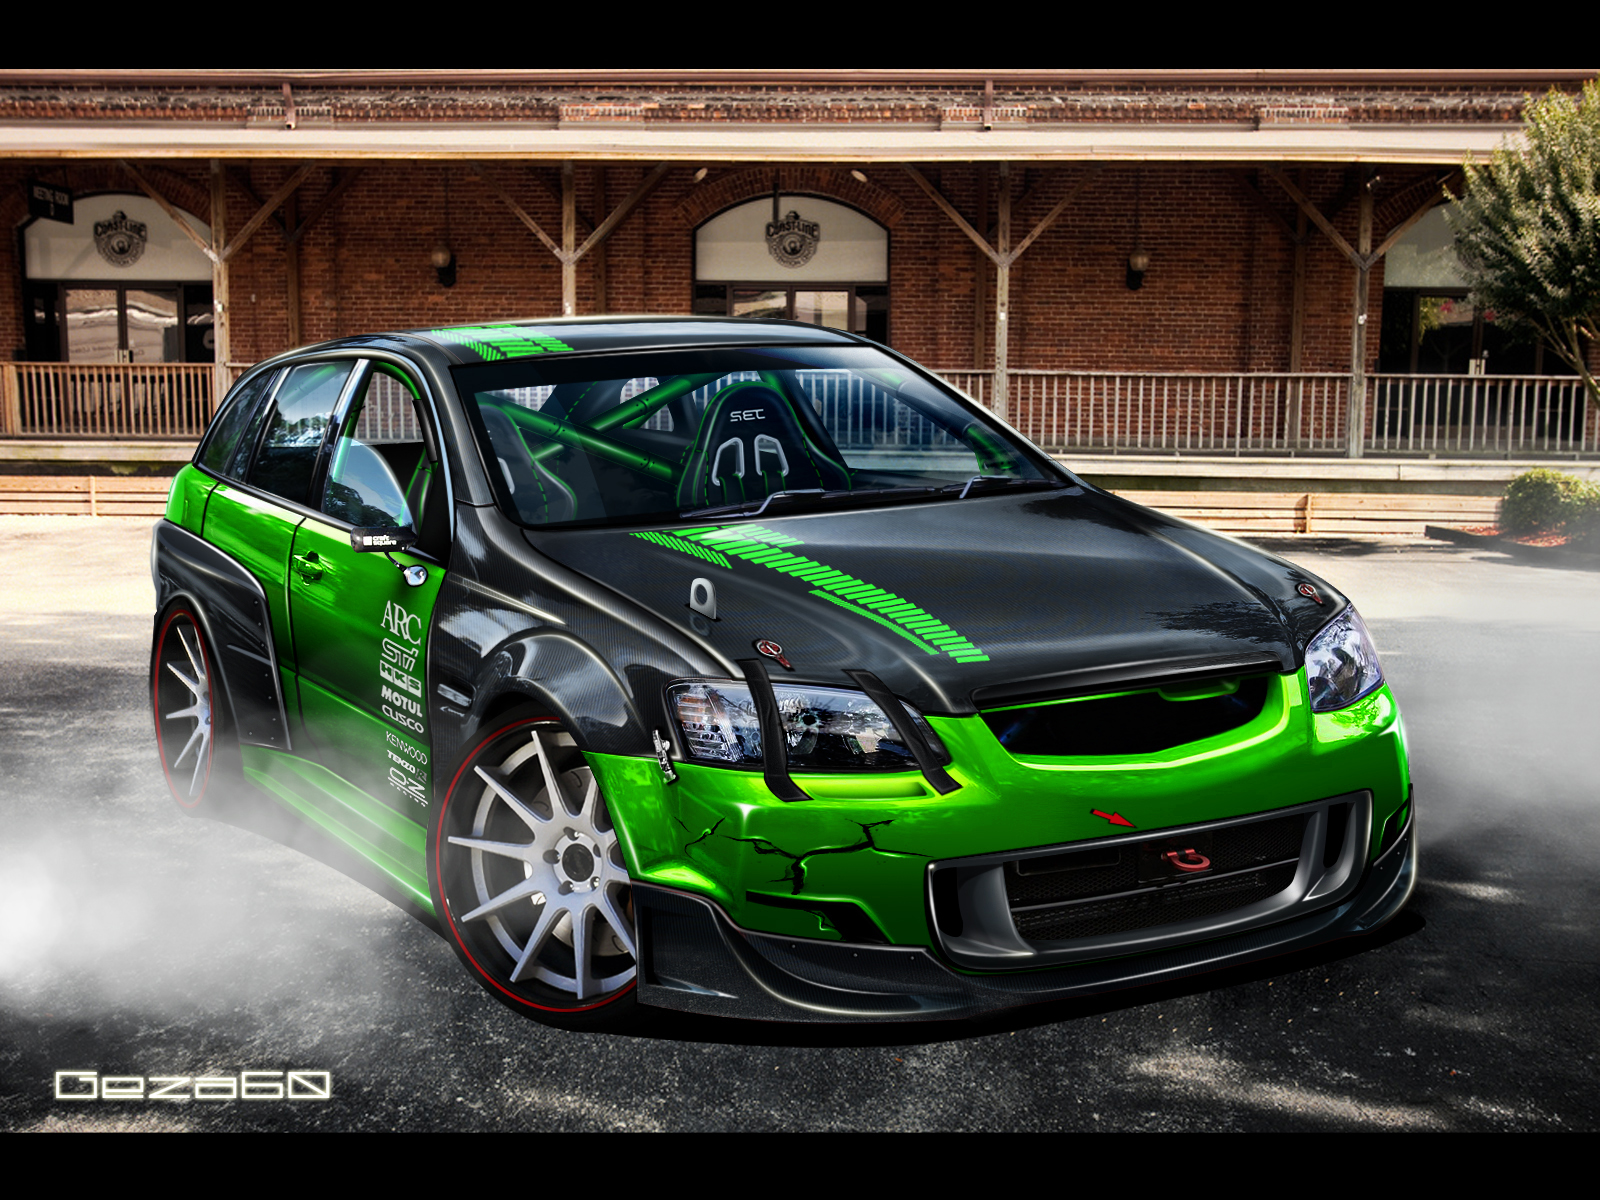 Holden Commodore Sportwagon by Geza60